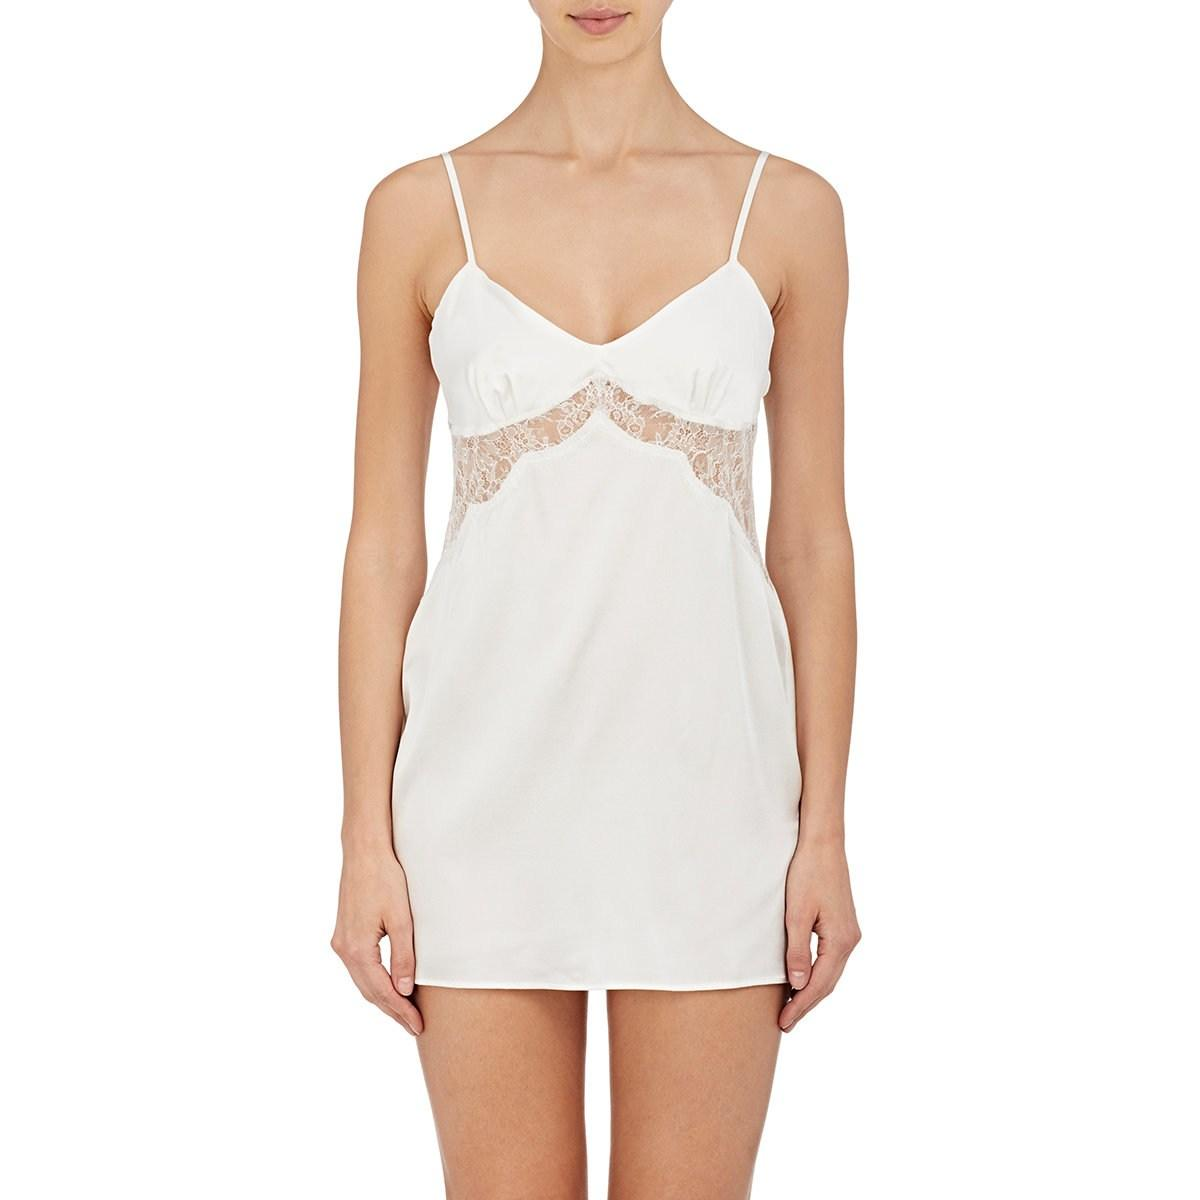 Lyst - Gilda   Pearl Gilda Lace-inset Satin Slip in White 7a6a0d3cf